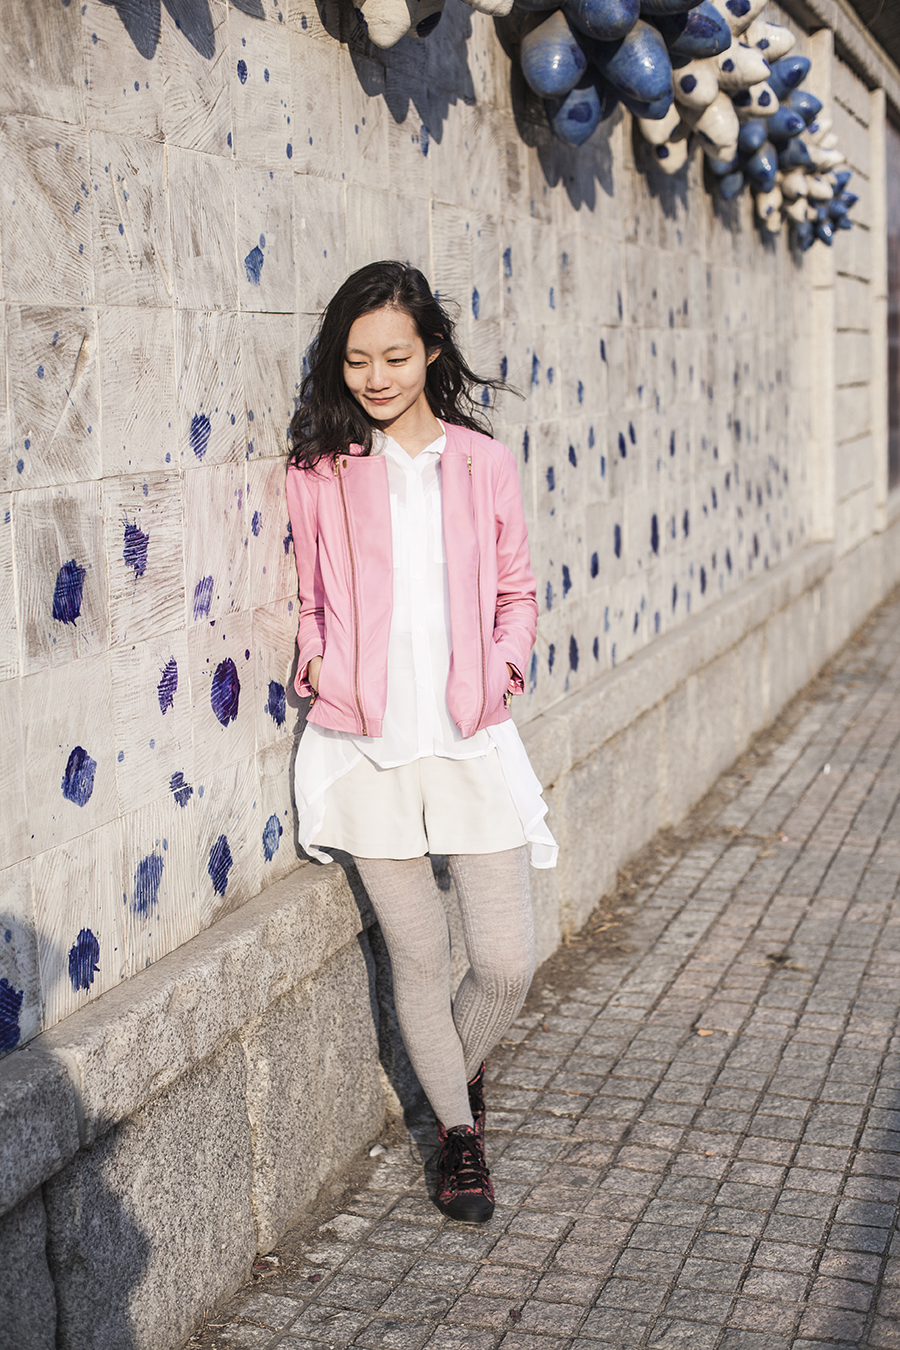 Outfit for Korea winter 15: pink lambskin leather jacket from Viparo #viparowomen #viparoteam #viparo, tan long cardigan from Zara, white shorts from Lowrys Farm, sheer white chiffon shirt from M)phosis, white pashmina shawl from India, grey heattech tights from Uniqlo, red high top sneakers from McQ x Puma.